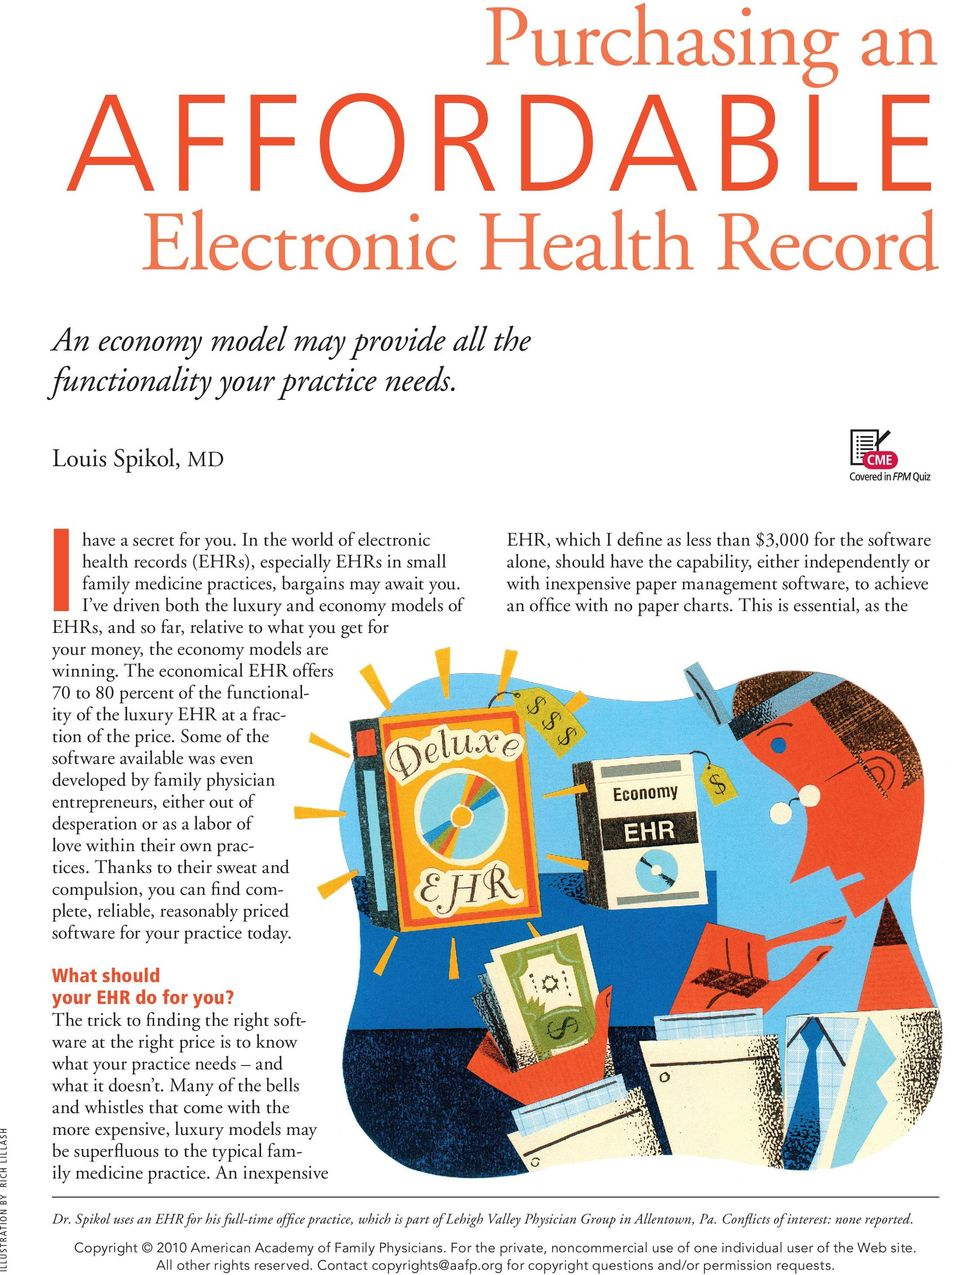 In the world of electronic health records (EHRs), especially EHRs in small family medicine practices, bargains may await you.